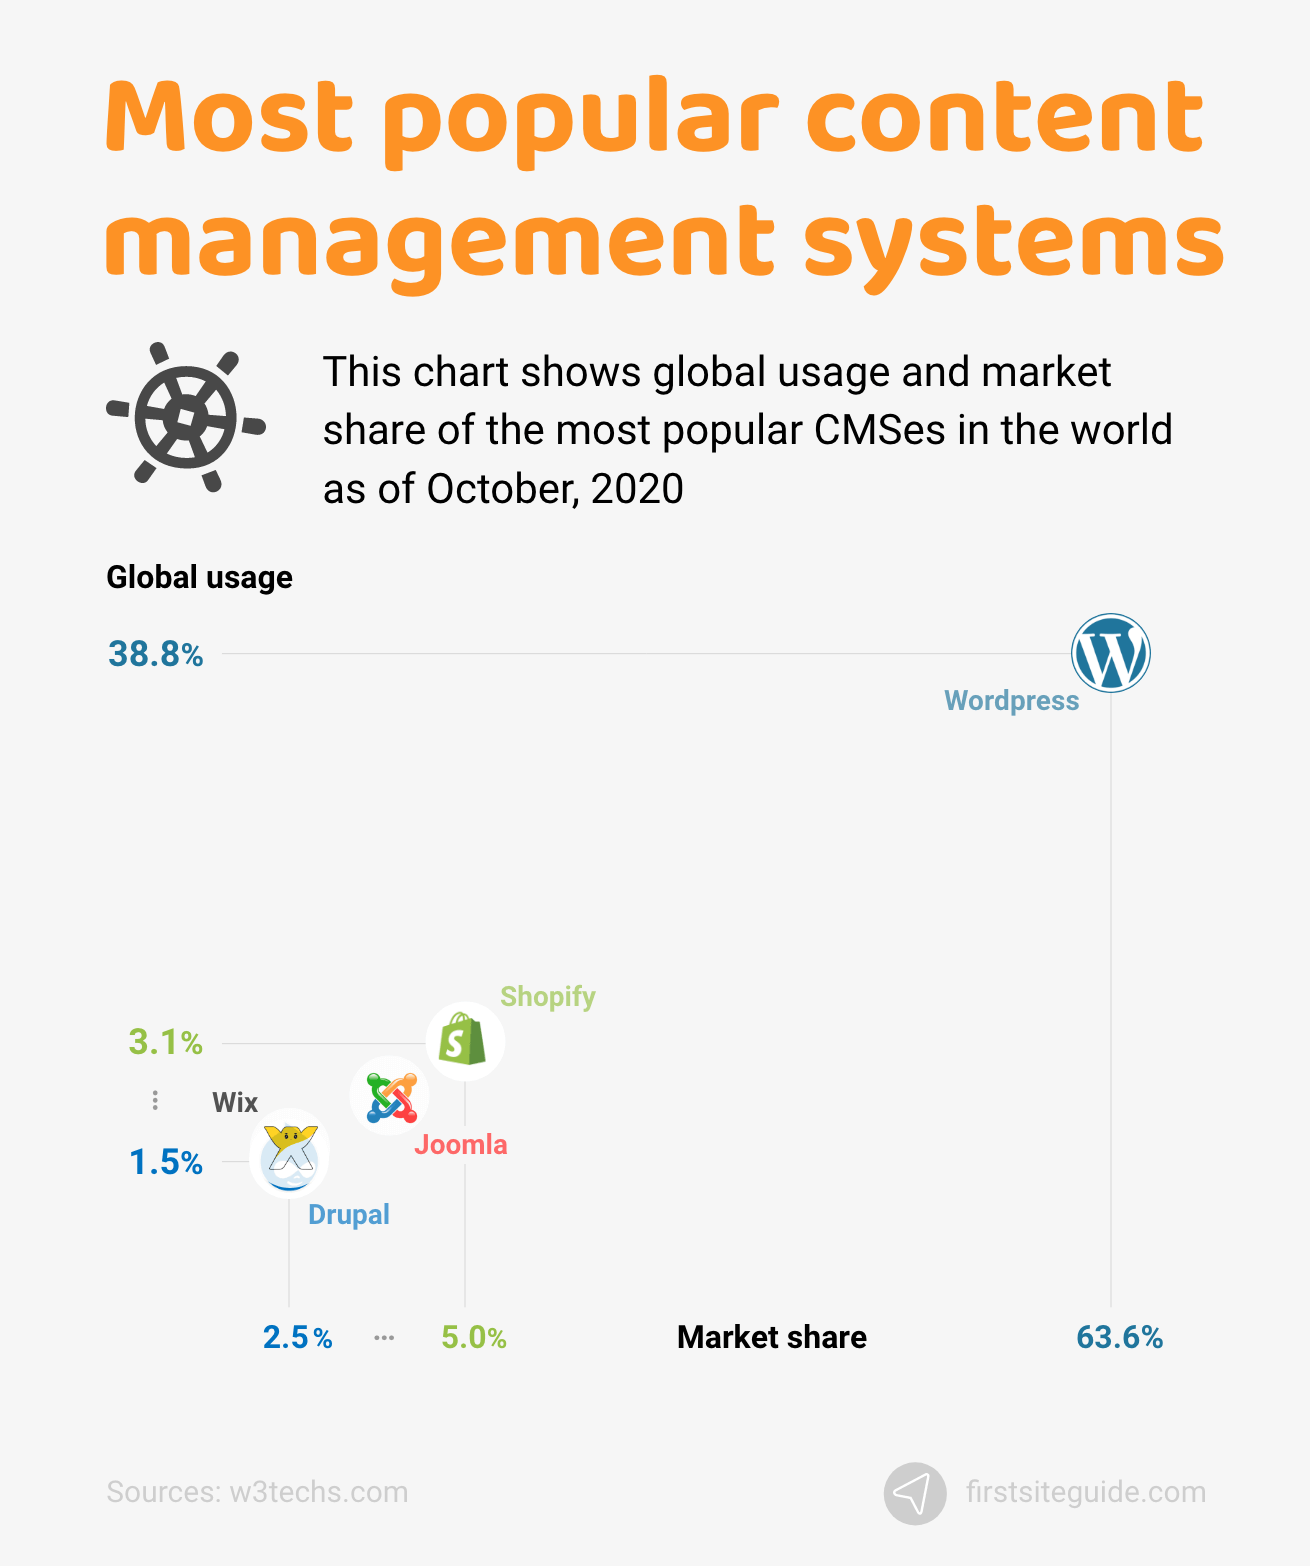 Most popular content management systems